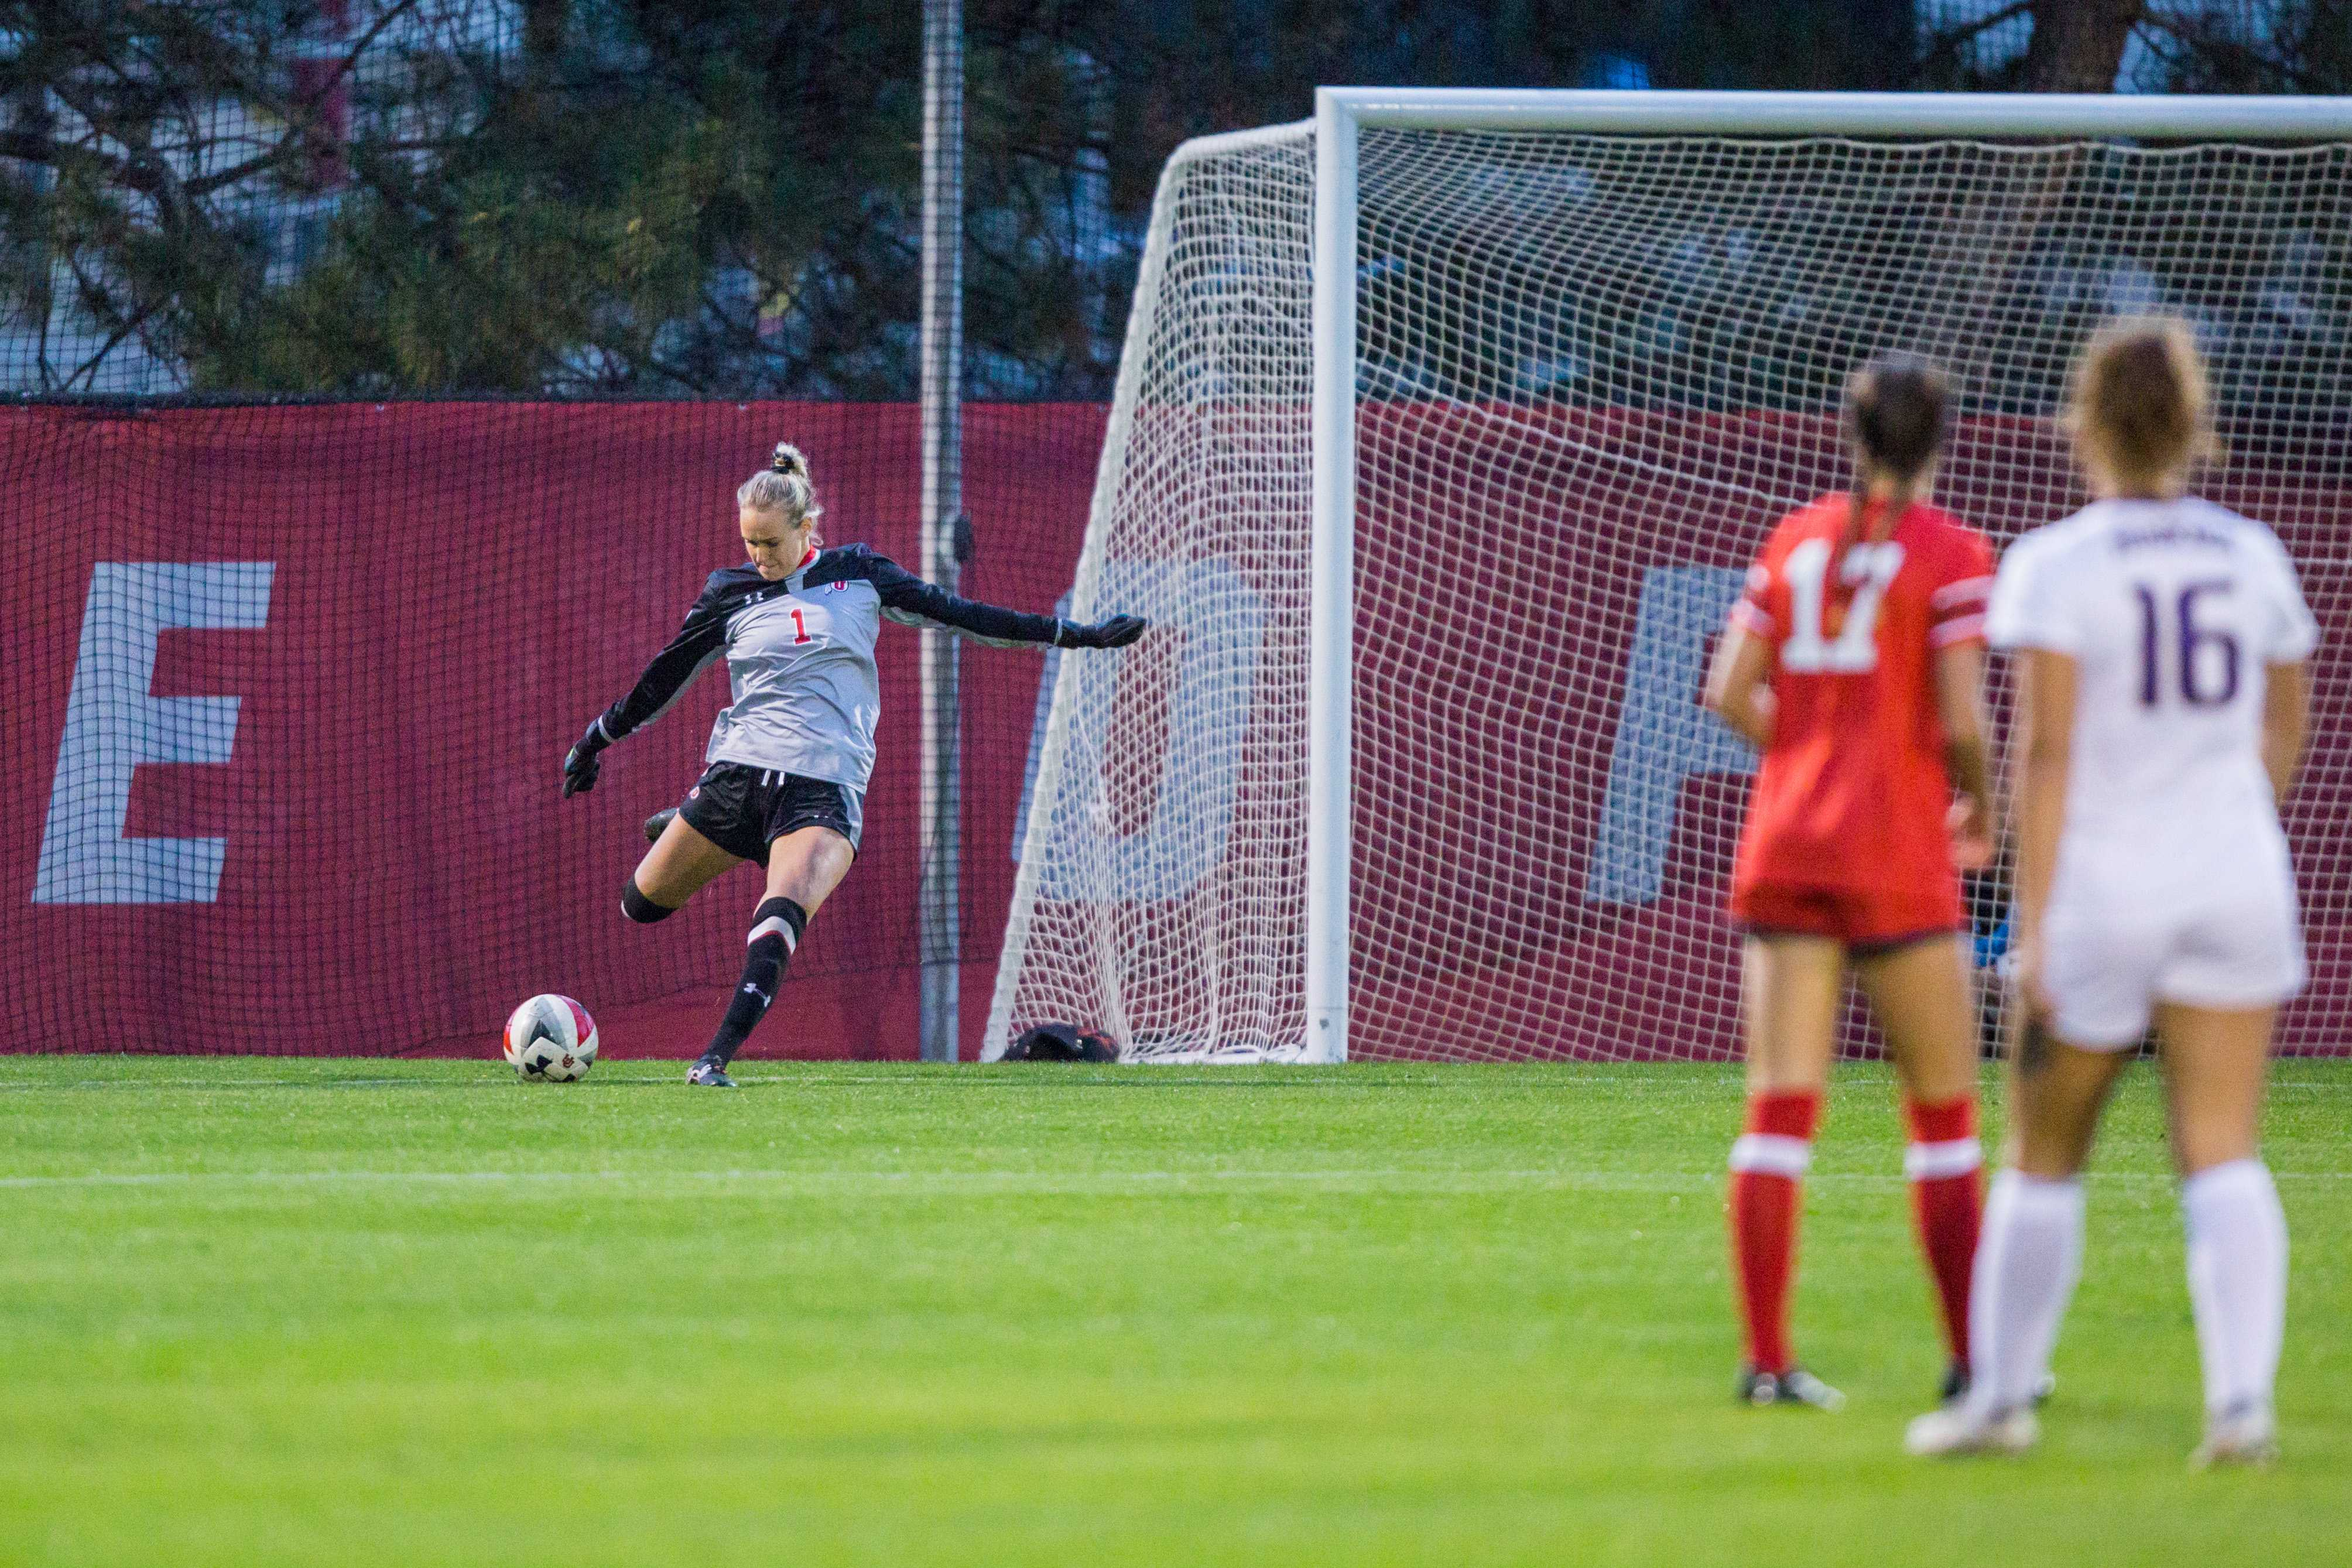 University of Utah Junior Goalkeeper Carly Nelson (1) passed the ball in an NCAA Women's Soccer game vs. Washington at Ute Soccer Field in Salt Lake City, UT on Thursday October 04, 2018.  (Photo by Curtis Lin | Daily Utah Chronicle)